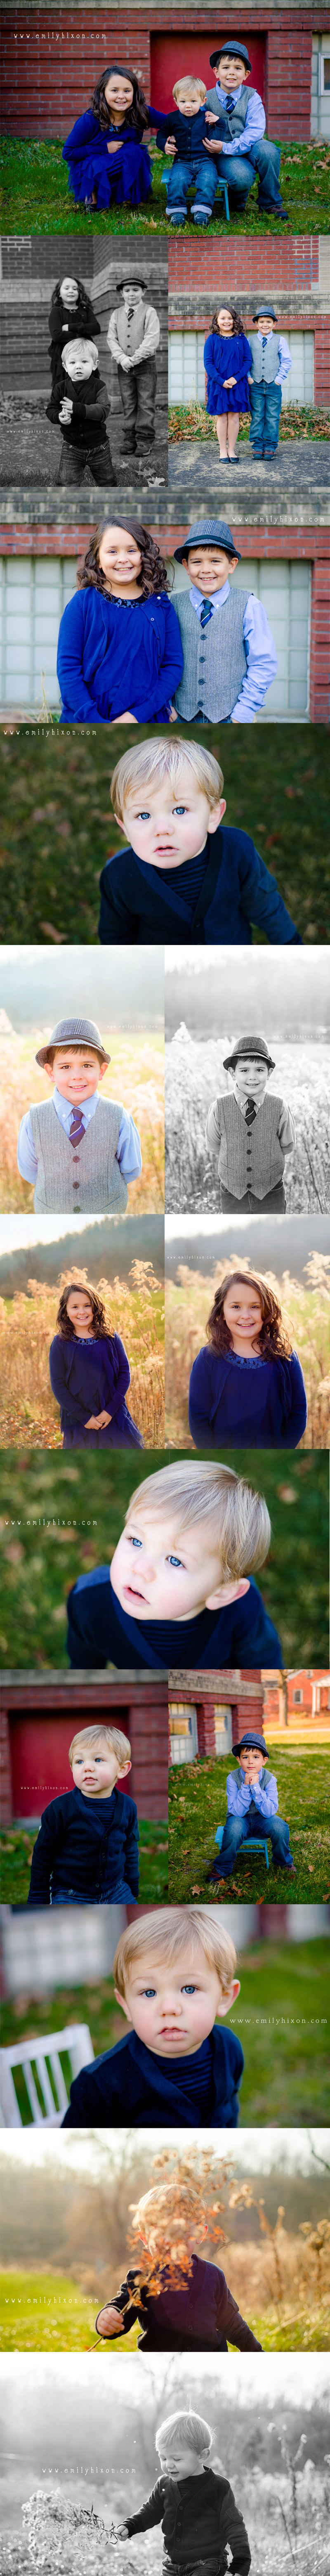 Cousins | Pittsburgh Child Portrait Photographer – Child Photo Session | Emily Hixon PhotographyCousins | Pittsburgh Child Portrait Photographer – Child Photo Session | Emily Hixon Photography